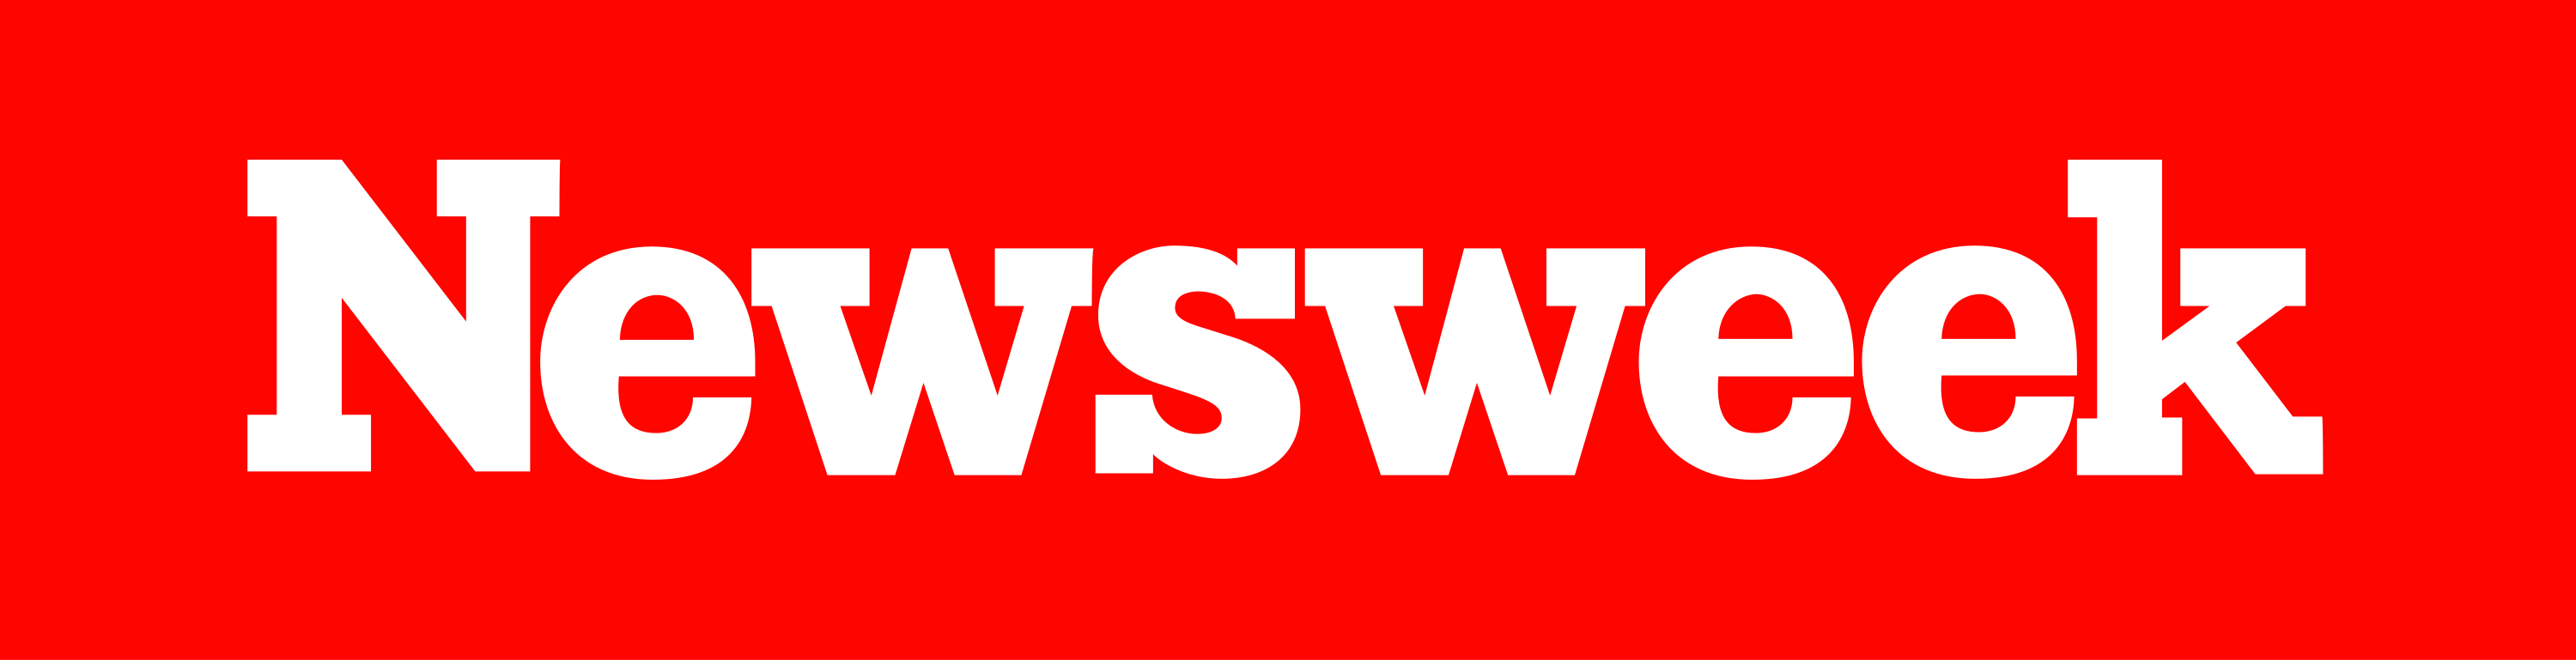 Kristina Durante featured on Newsweek